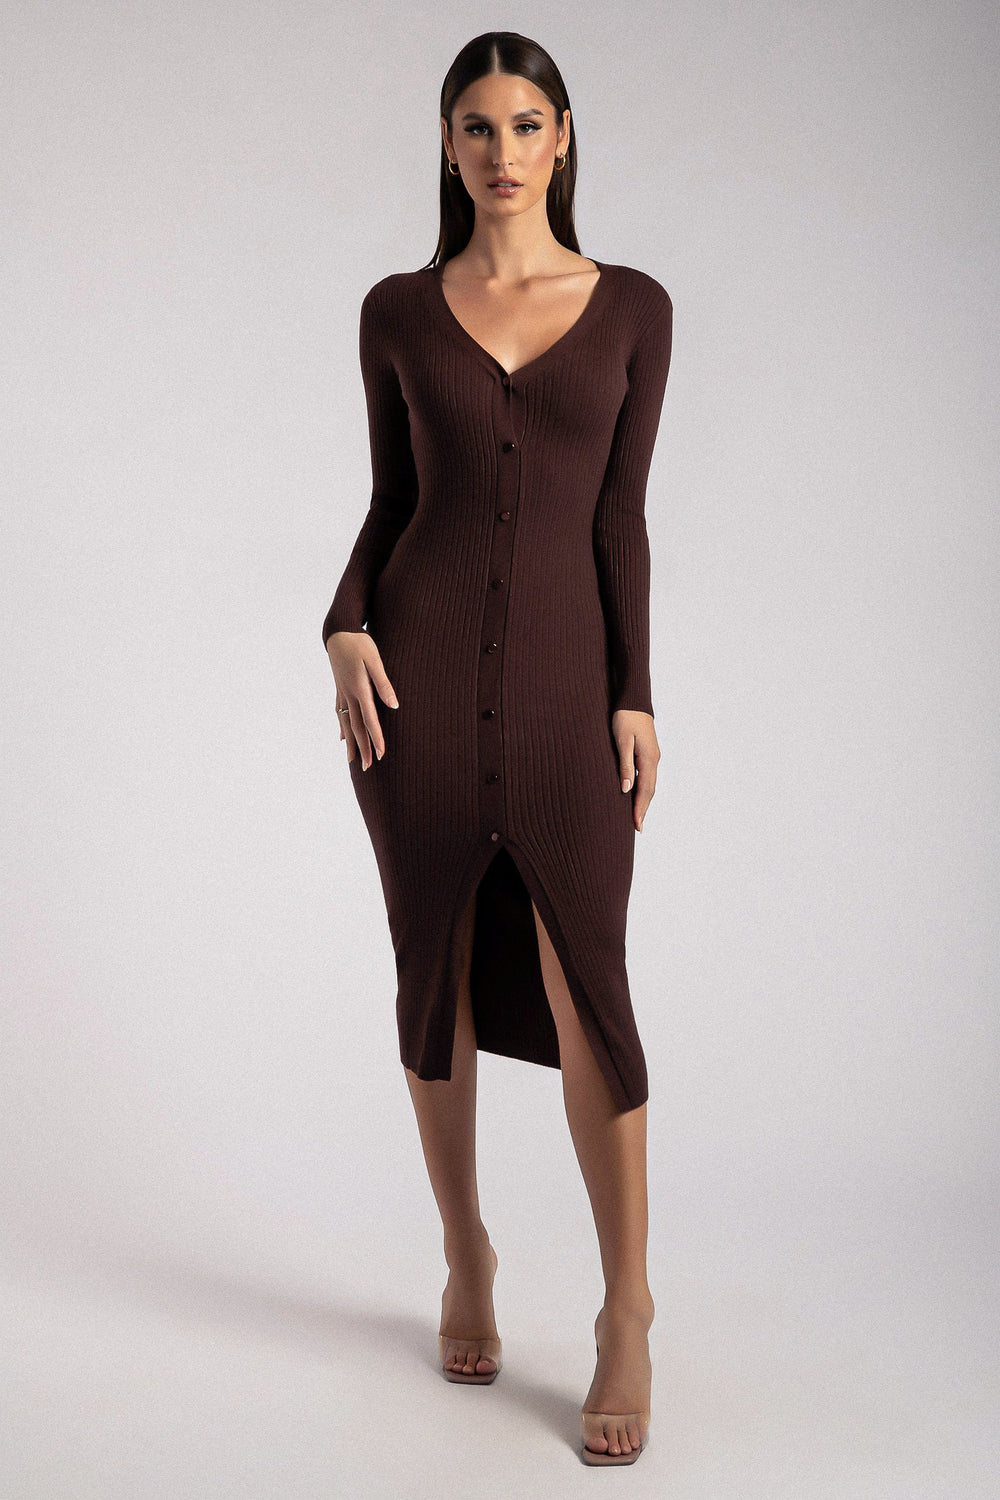 Brynn Long Sleeve Button Down Midi Dress - Chocolate